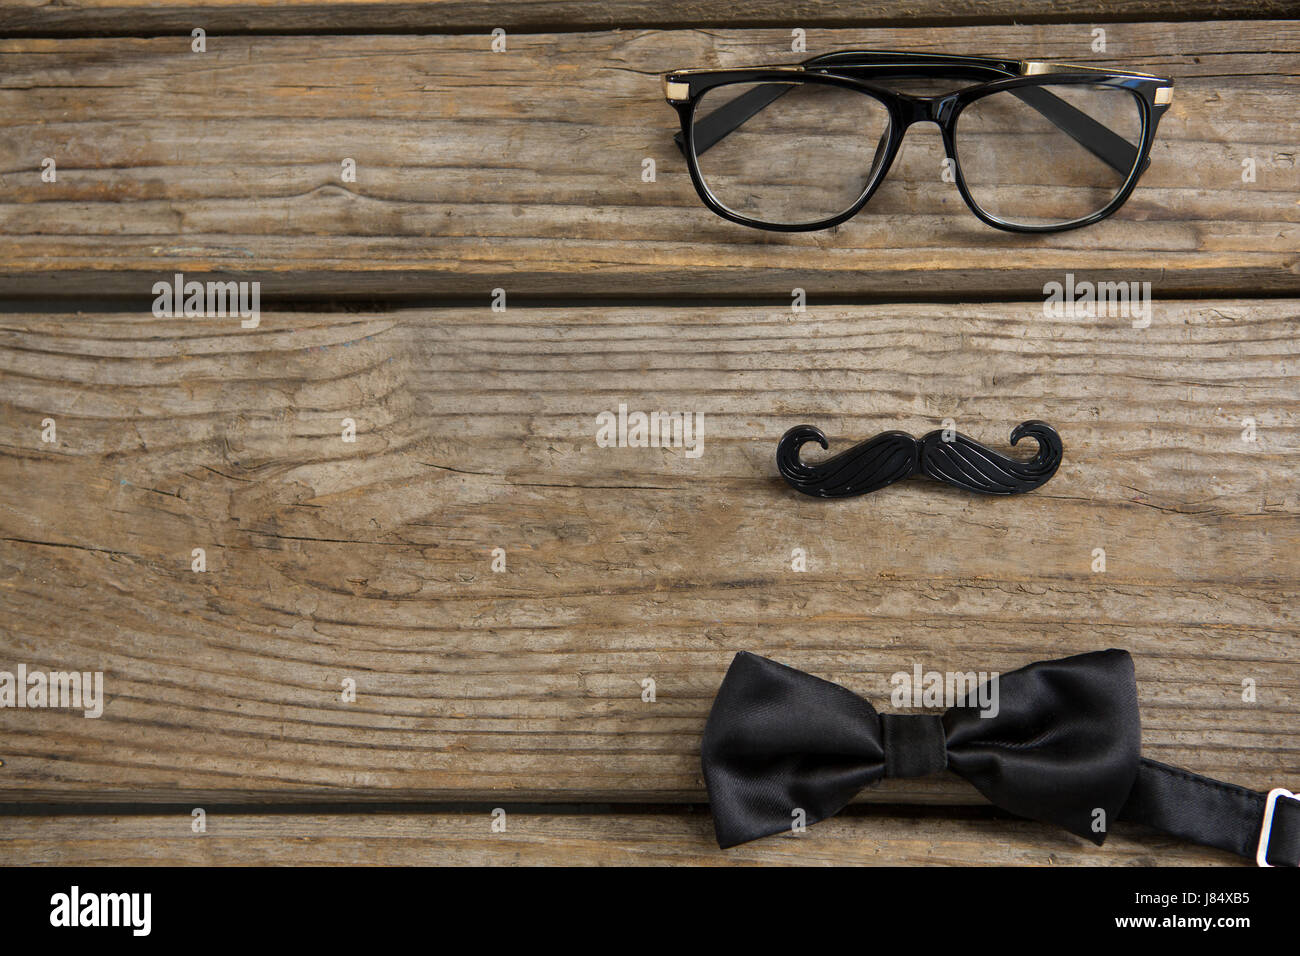 High angle view of mustache with eyeglasses and bow tie on wooden table - Stock Image